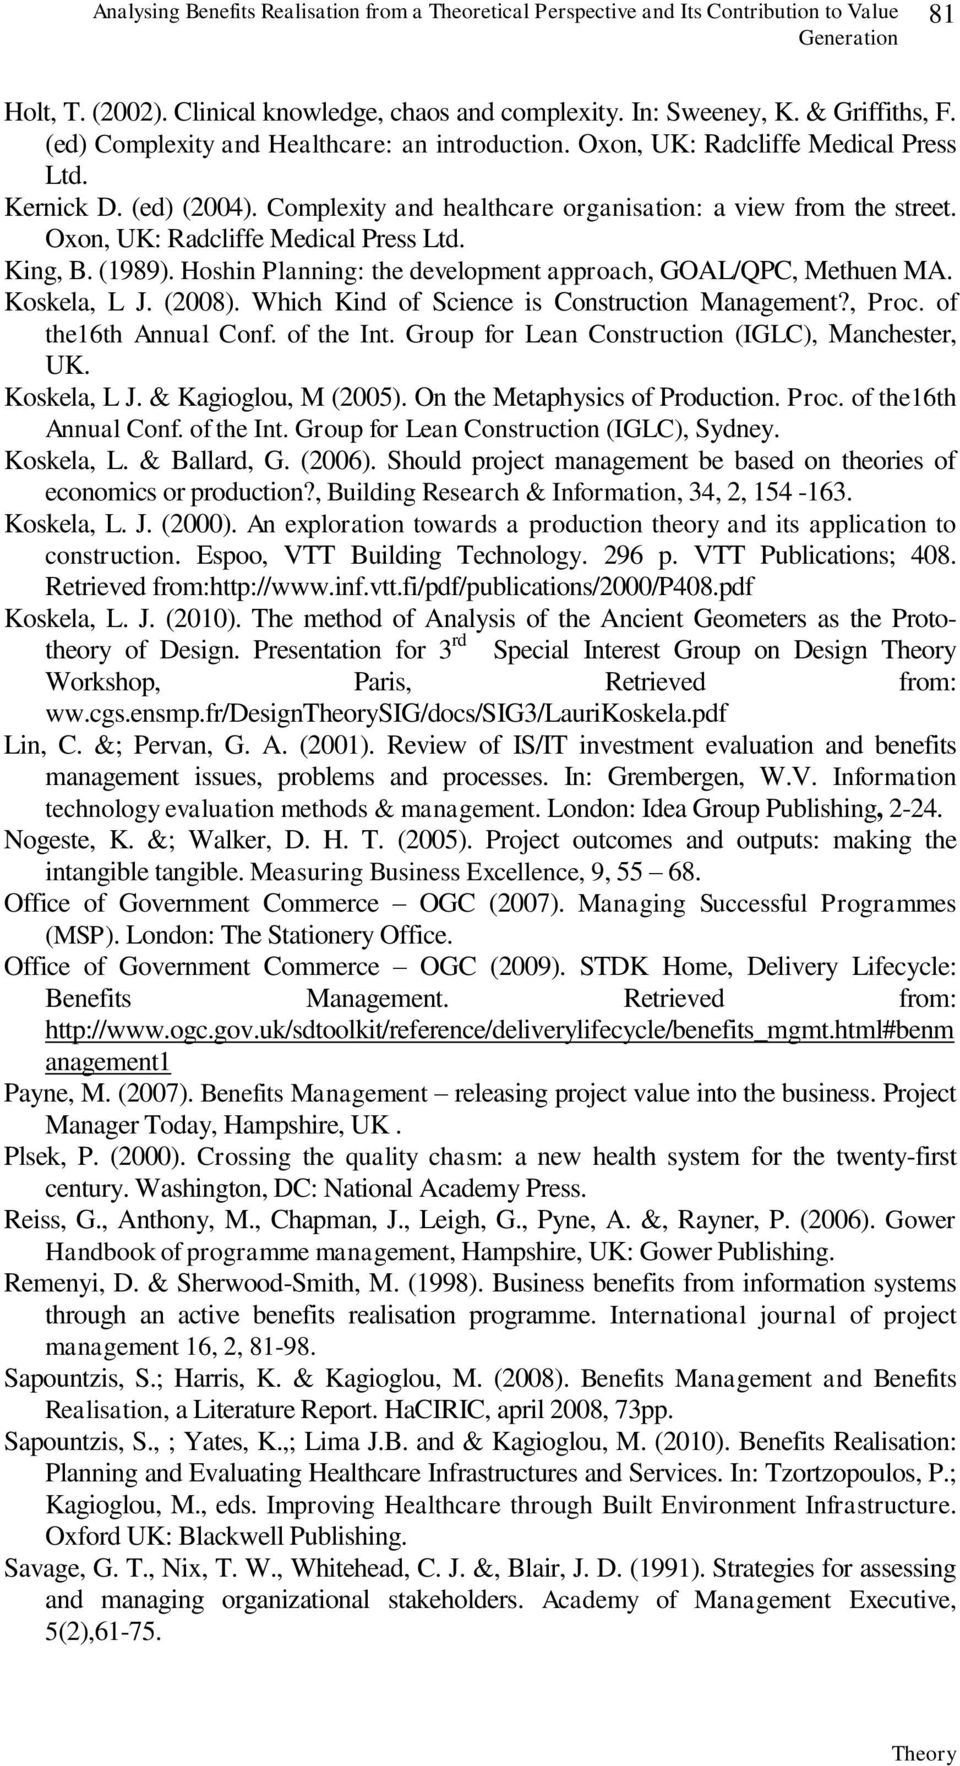 Oxon, UK: Radcliffe Medical Press Ltd. King, B. (1989). Hoshin Planning: the development approach, GOAL/QPC, Methuen MA. Koskela, L J. (2008). Which Kind of Science is Construction Management?, Proc.